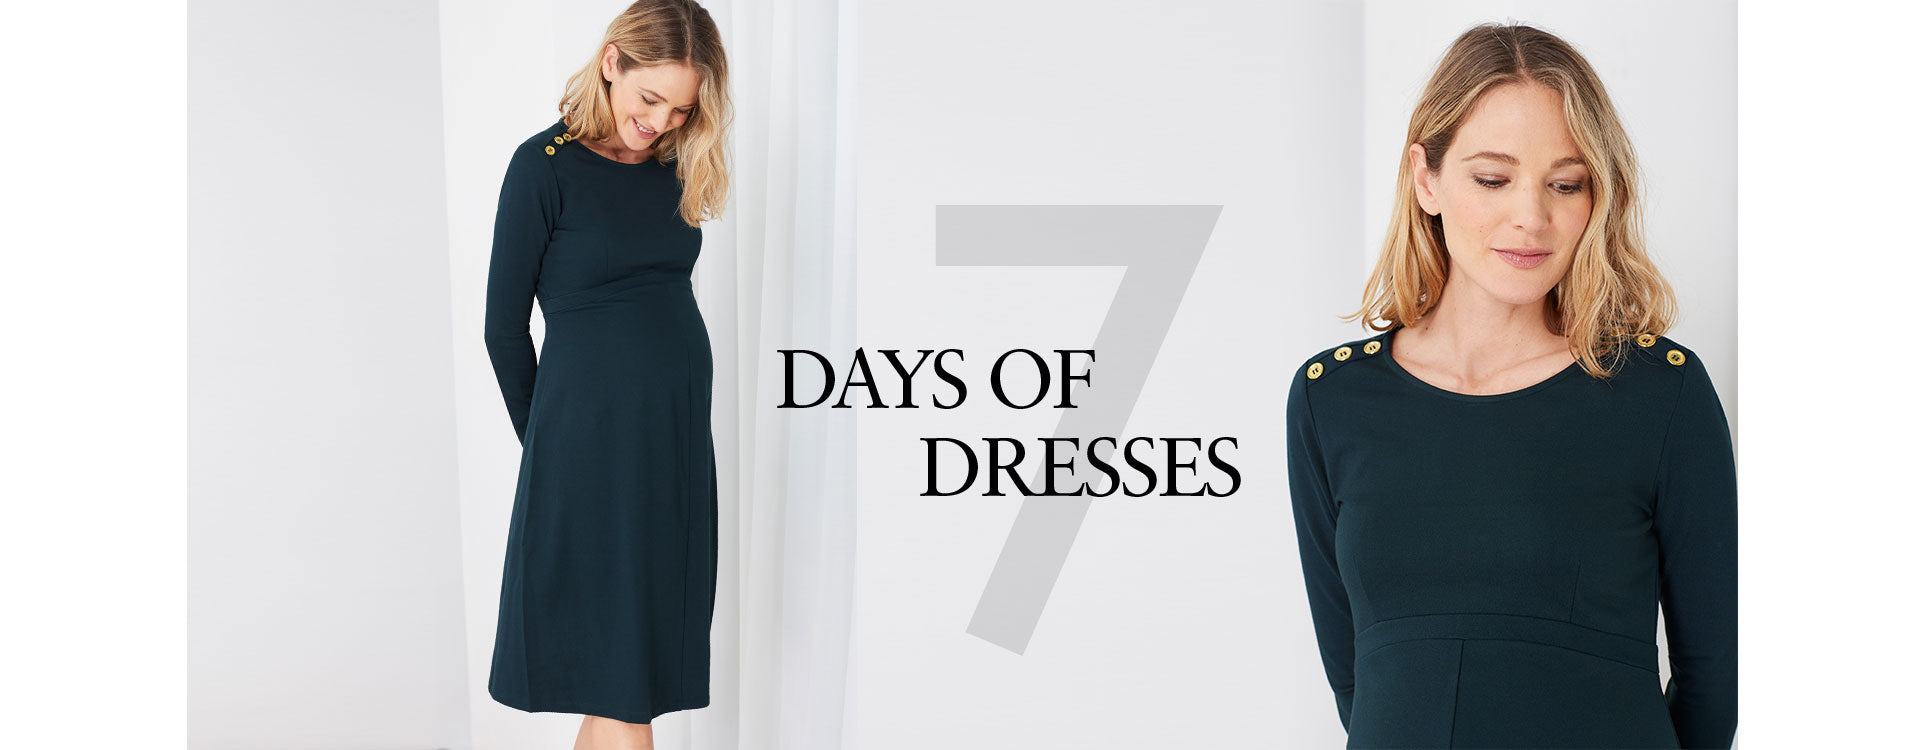 7 Days of Dresses